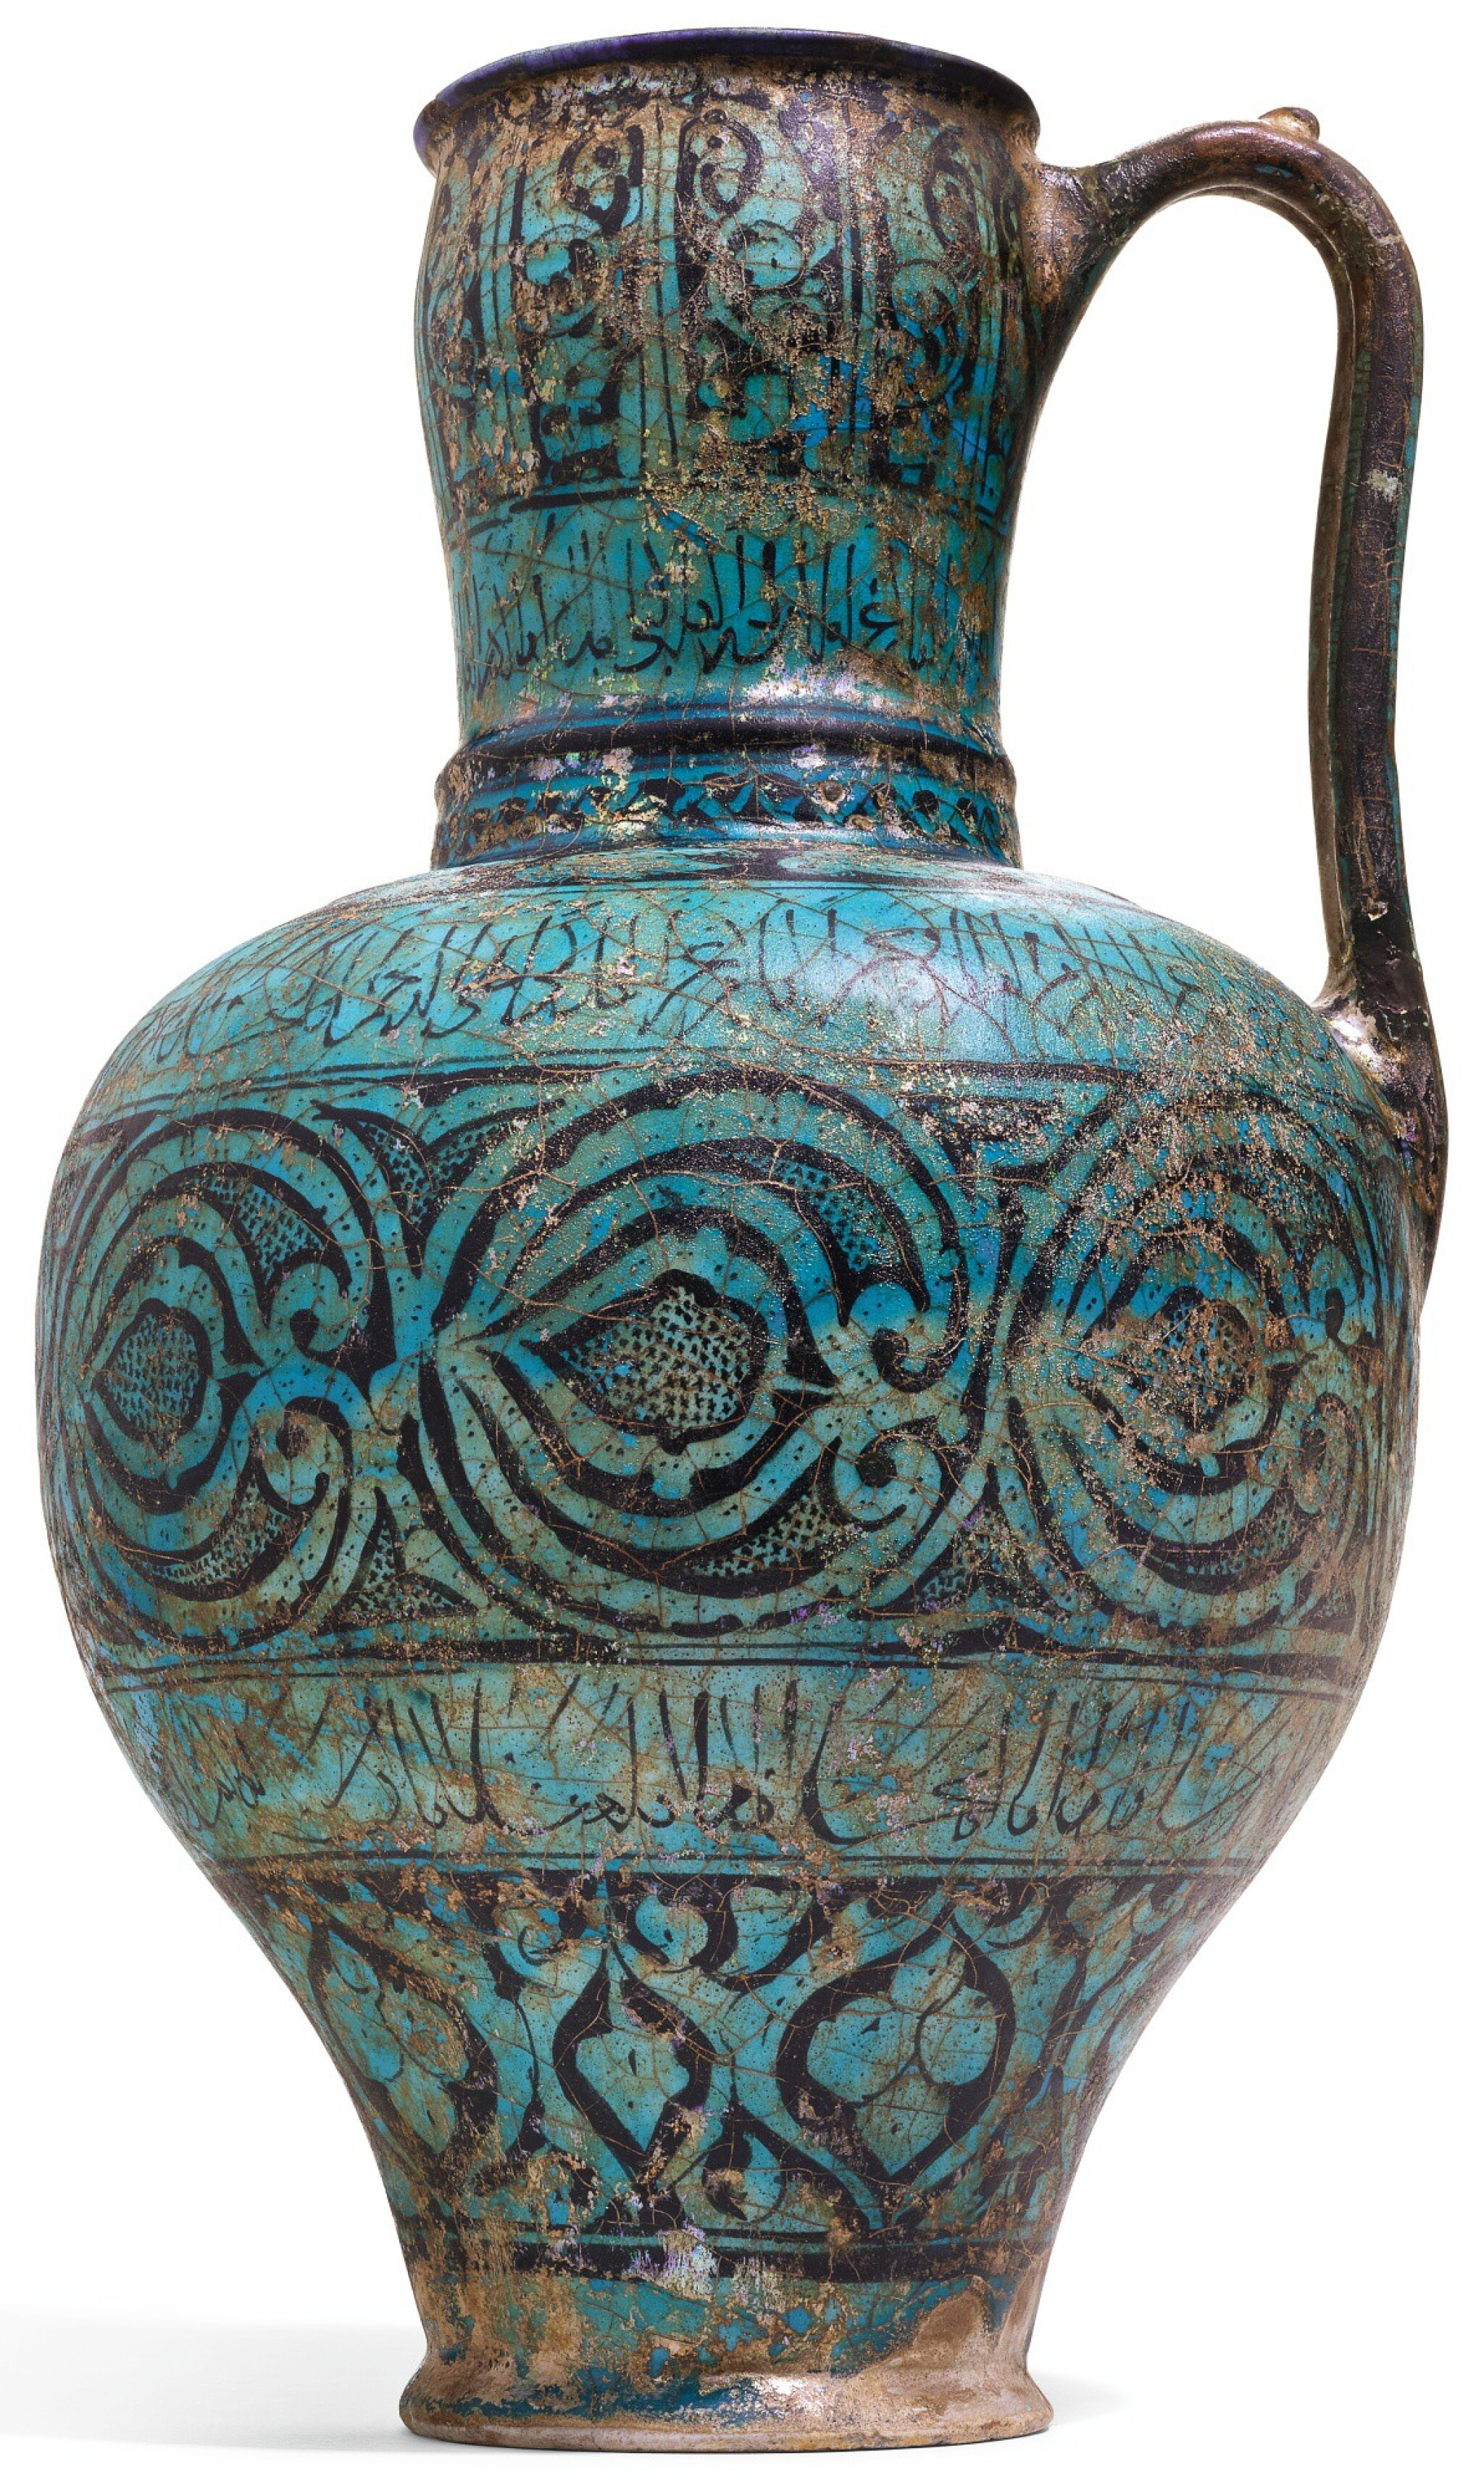 View full screen - View 1 of Lot 98. A RARE AND IMPORTANT KASHAN TURQUOISE GLAZED POTTERY PITCHER, PERSIA, CIRCA 1200-20 AD.